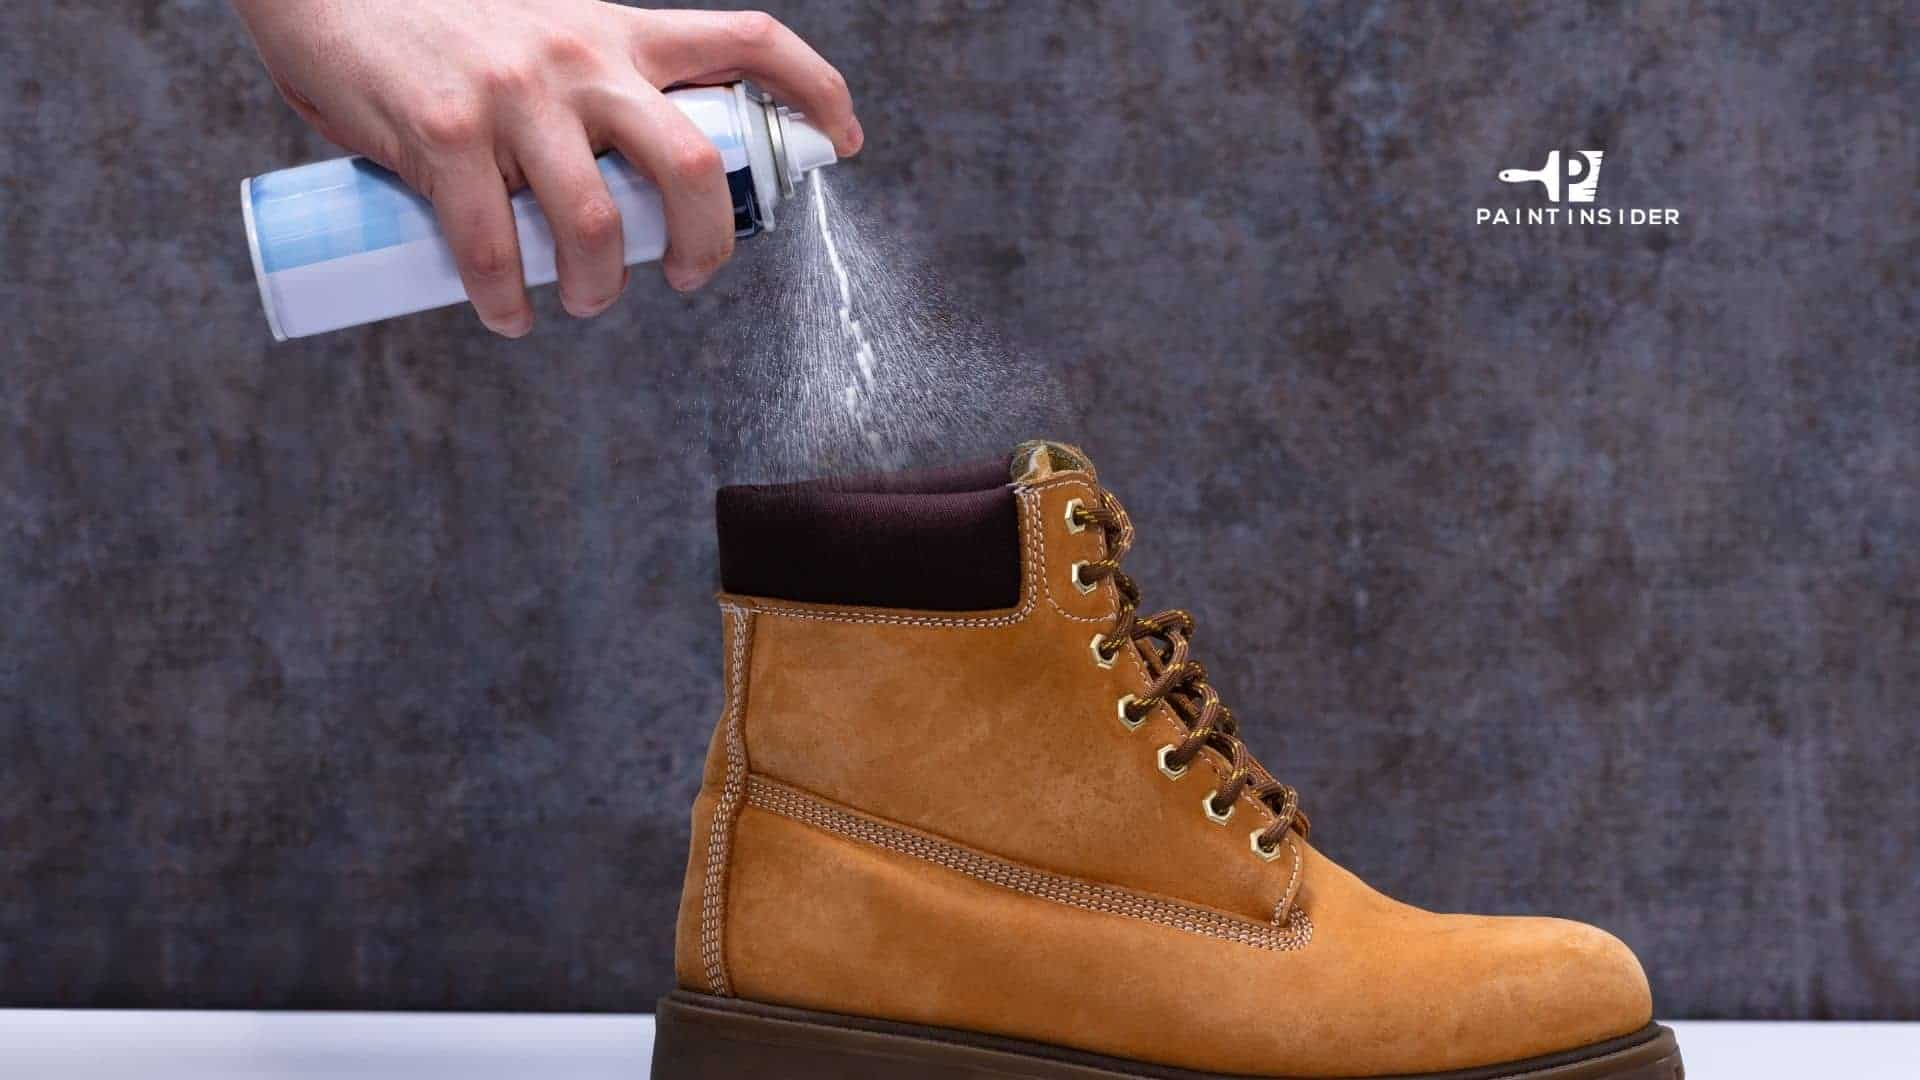 Best Spray Paint For Leather Shoes